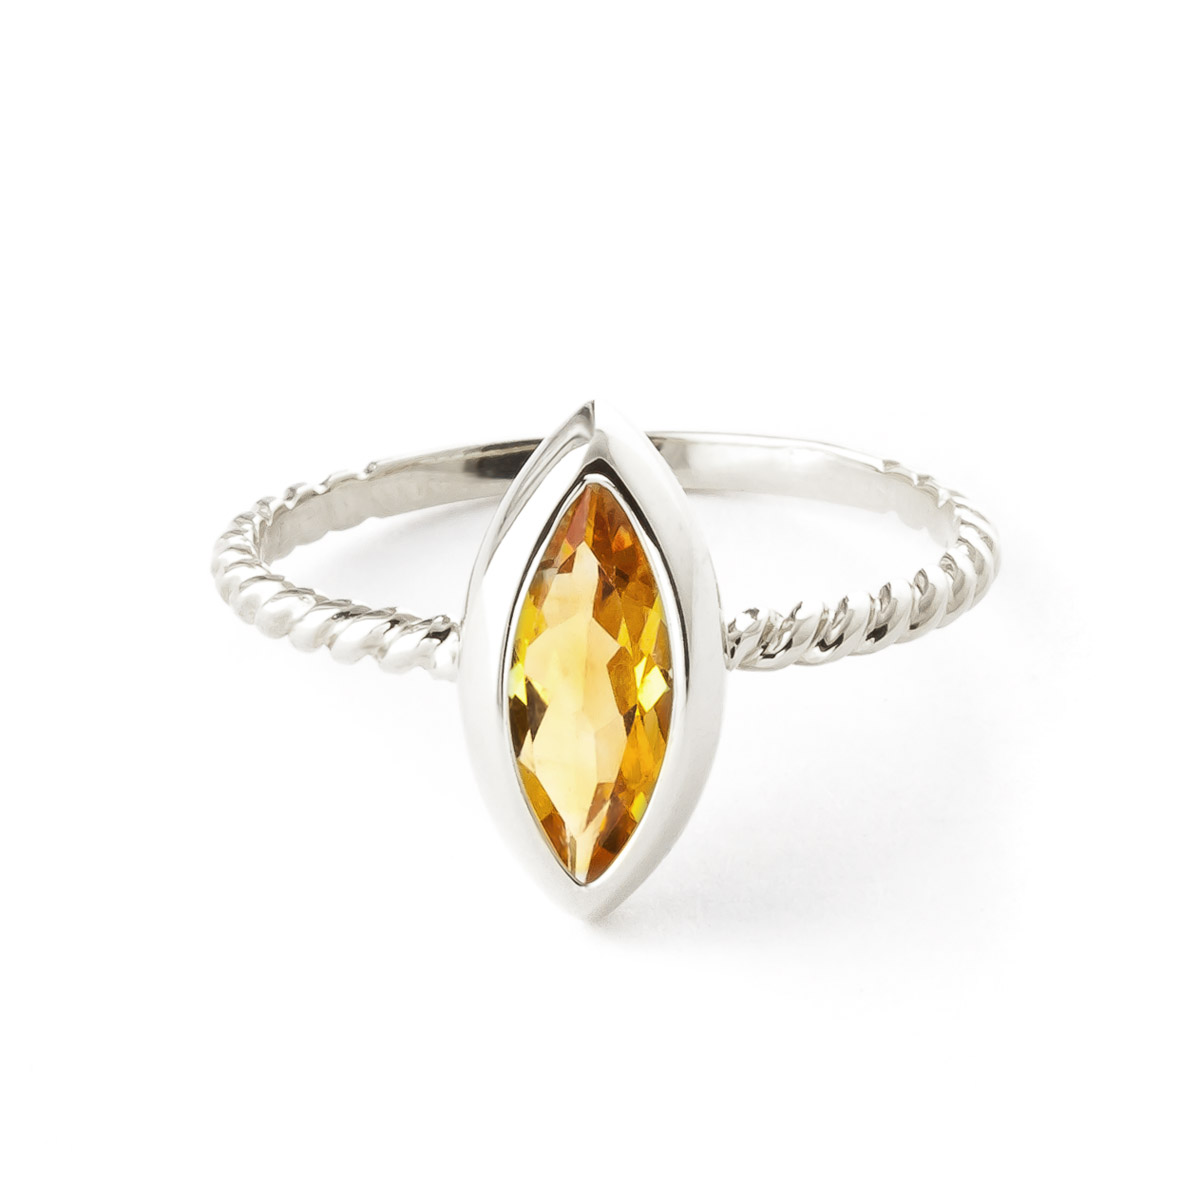 Marquise Cut Citrine Ring 1.7 ct in Sterling Silver